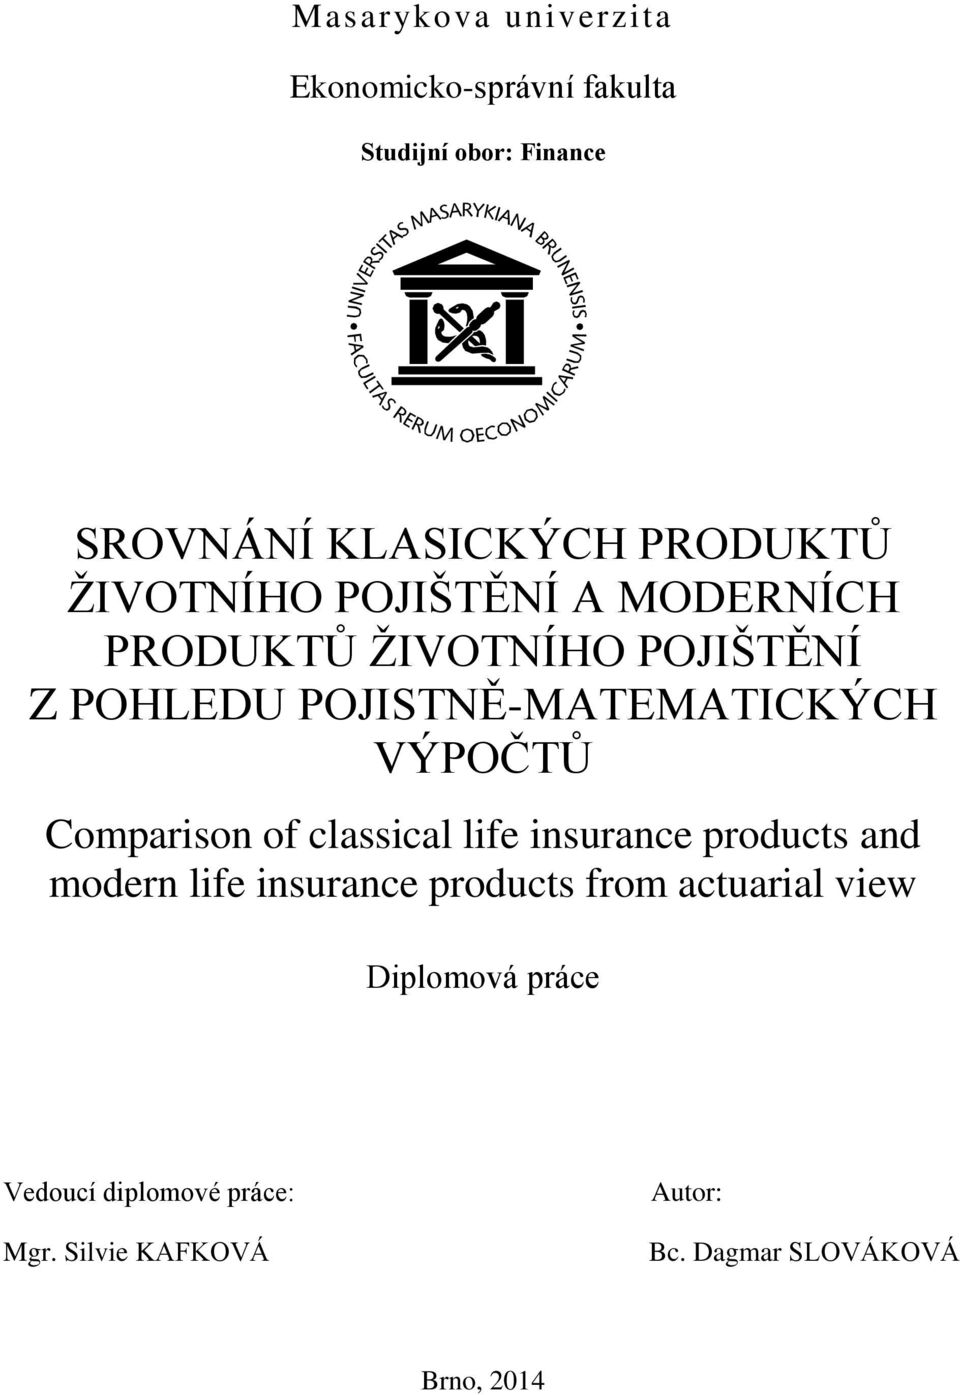 Comparison of classical life insurance products and modern life insurance products from actuarial